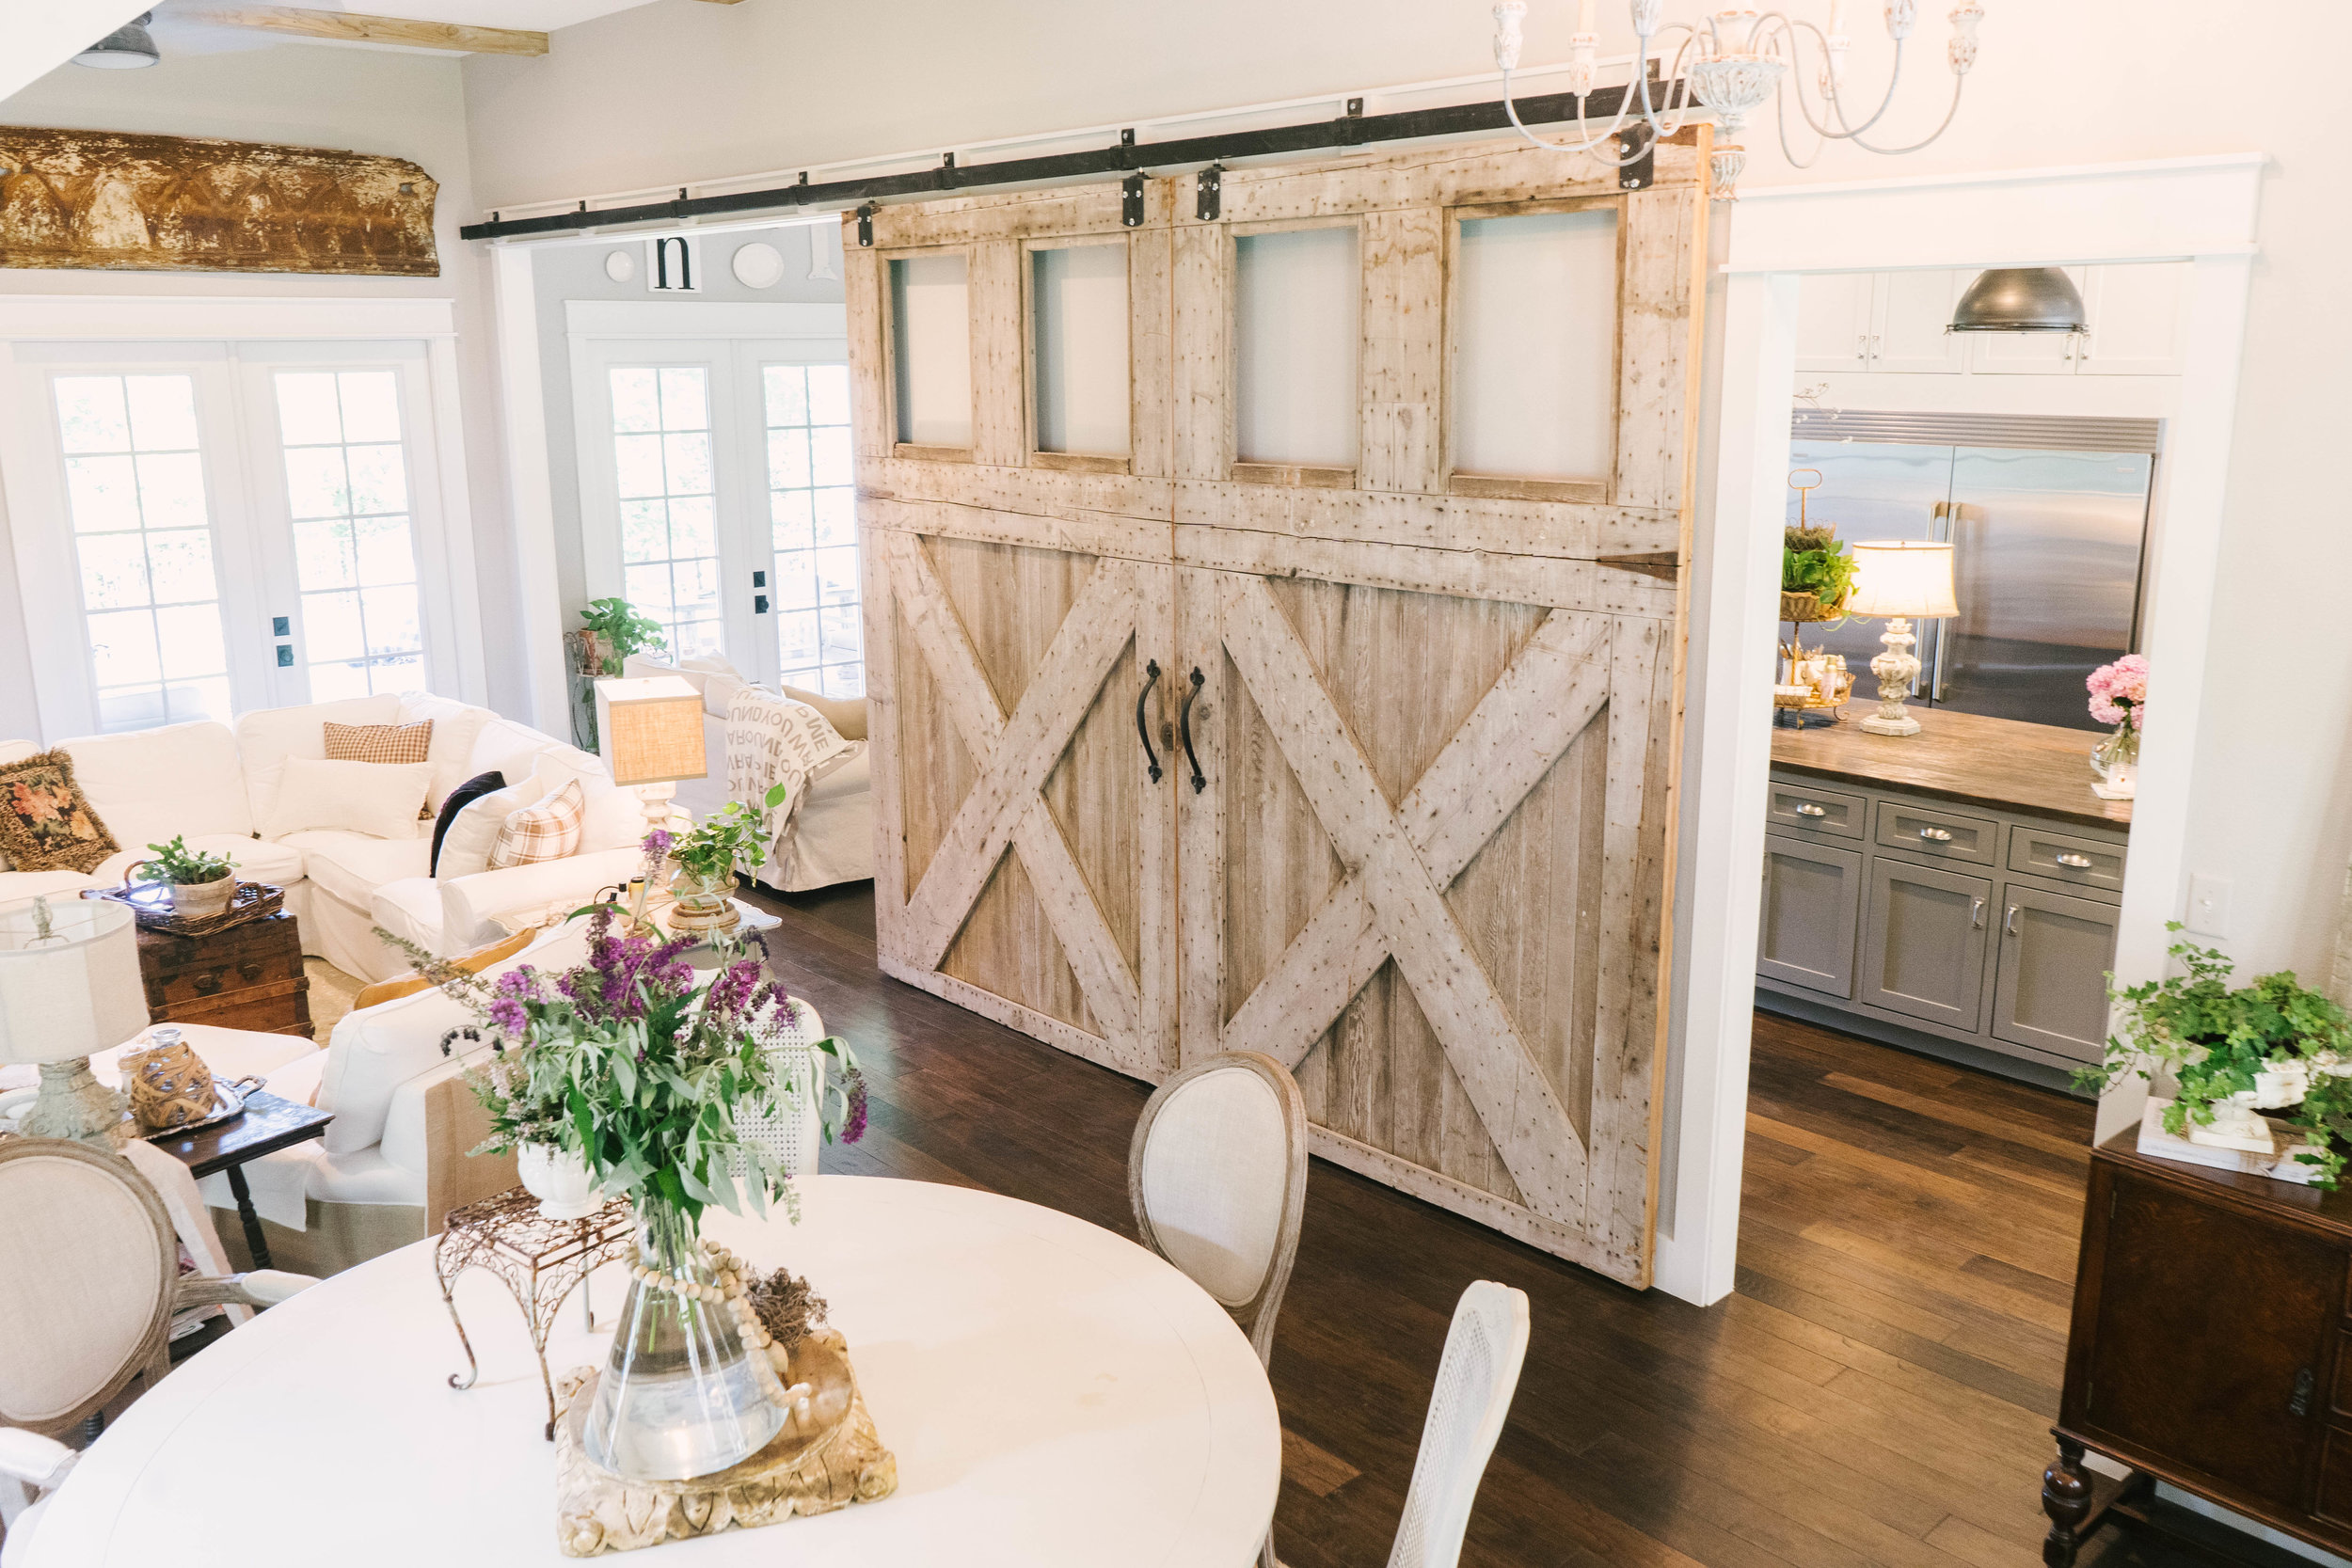 Farmhouse Home Tour - Vintage Home 45.jpg